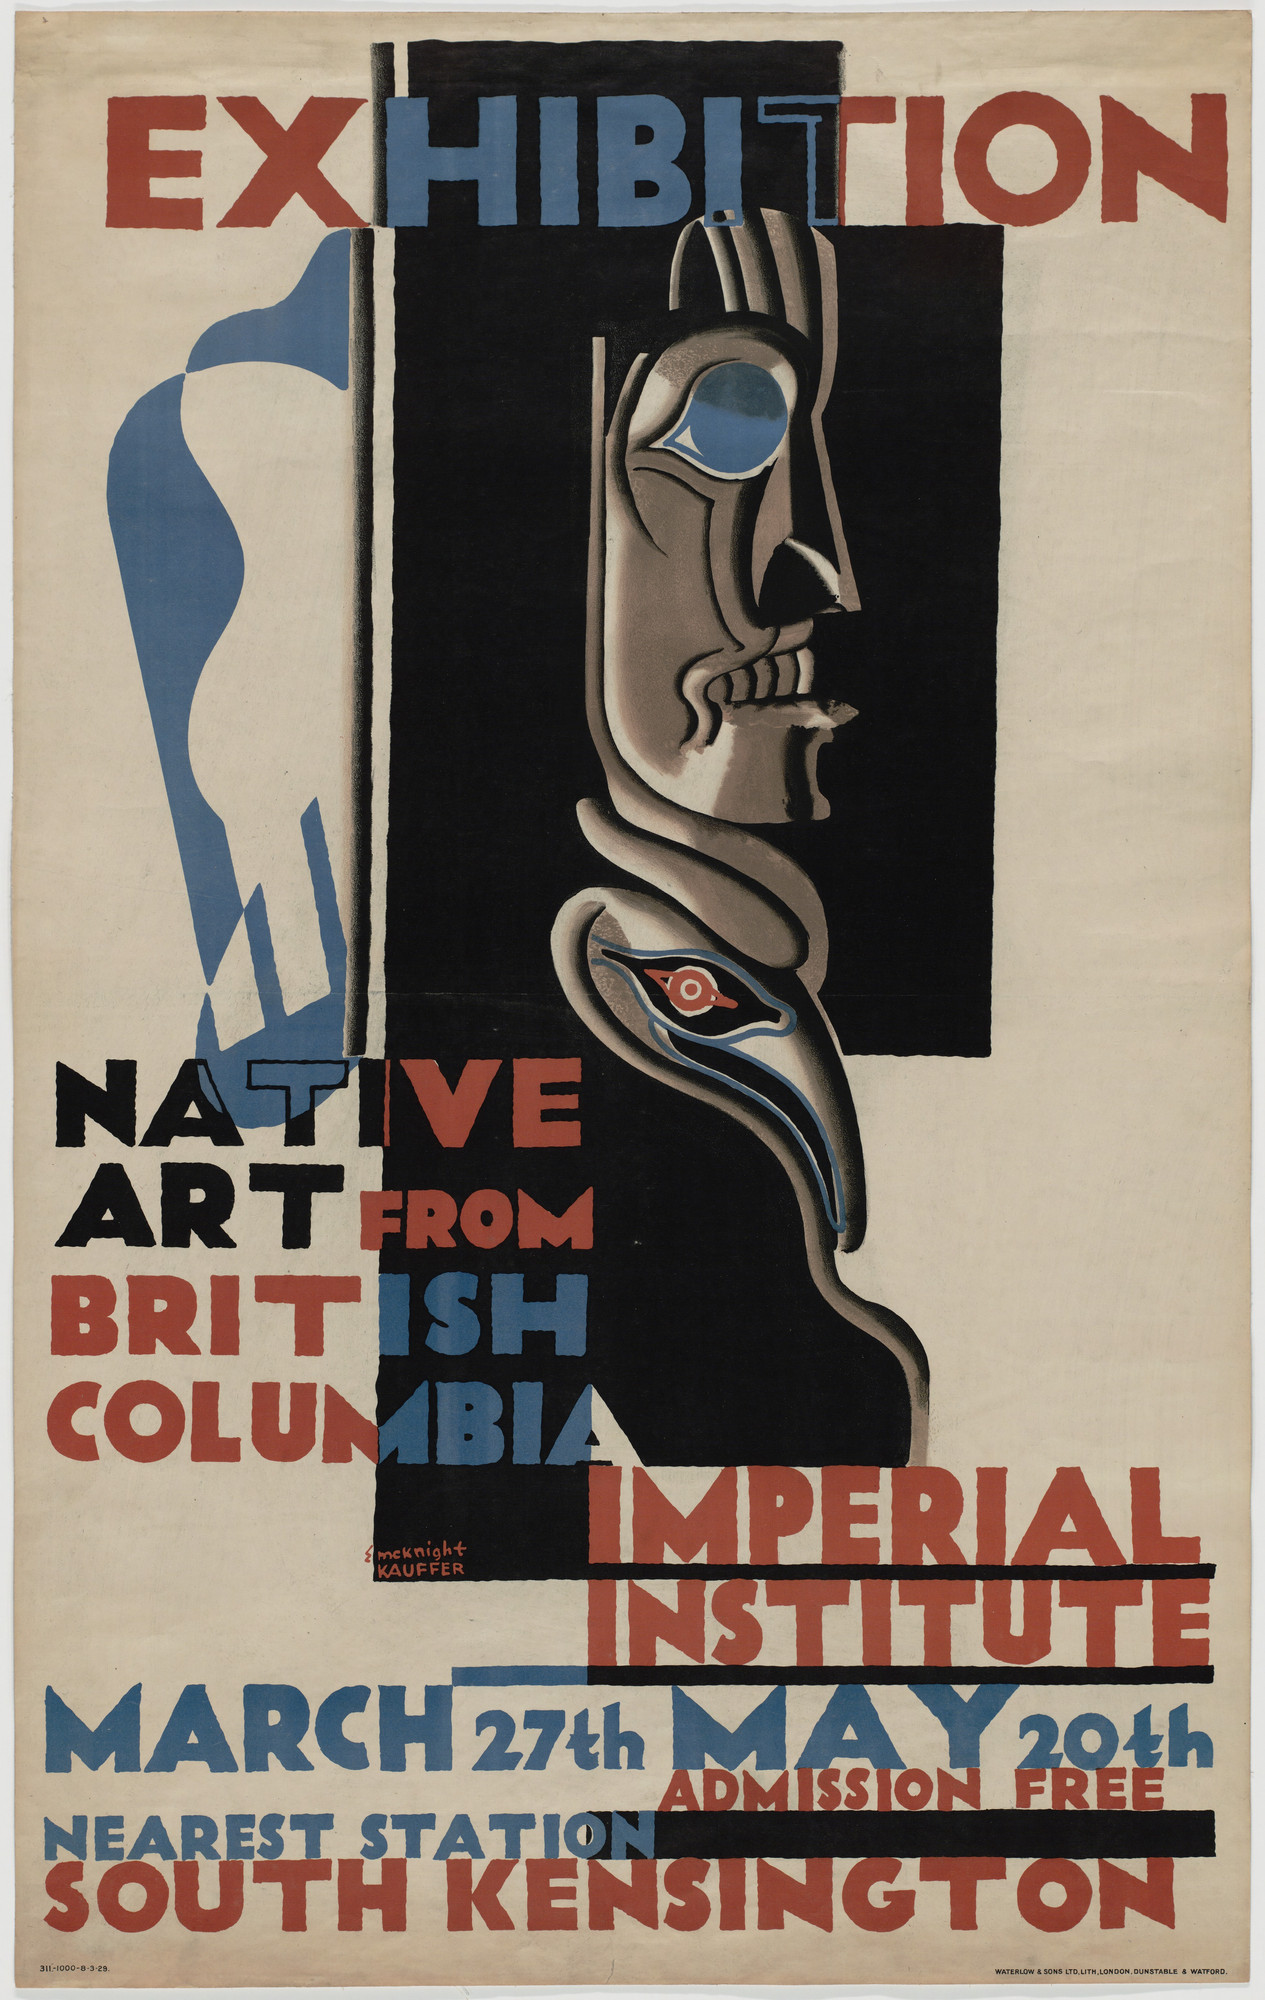 E. McKnight Kauffer. Exhibition: Native Art from British Columbia, Imperial Institute. 1929